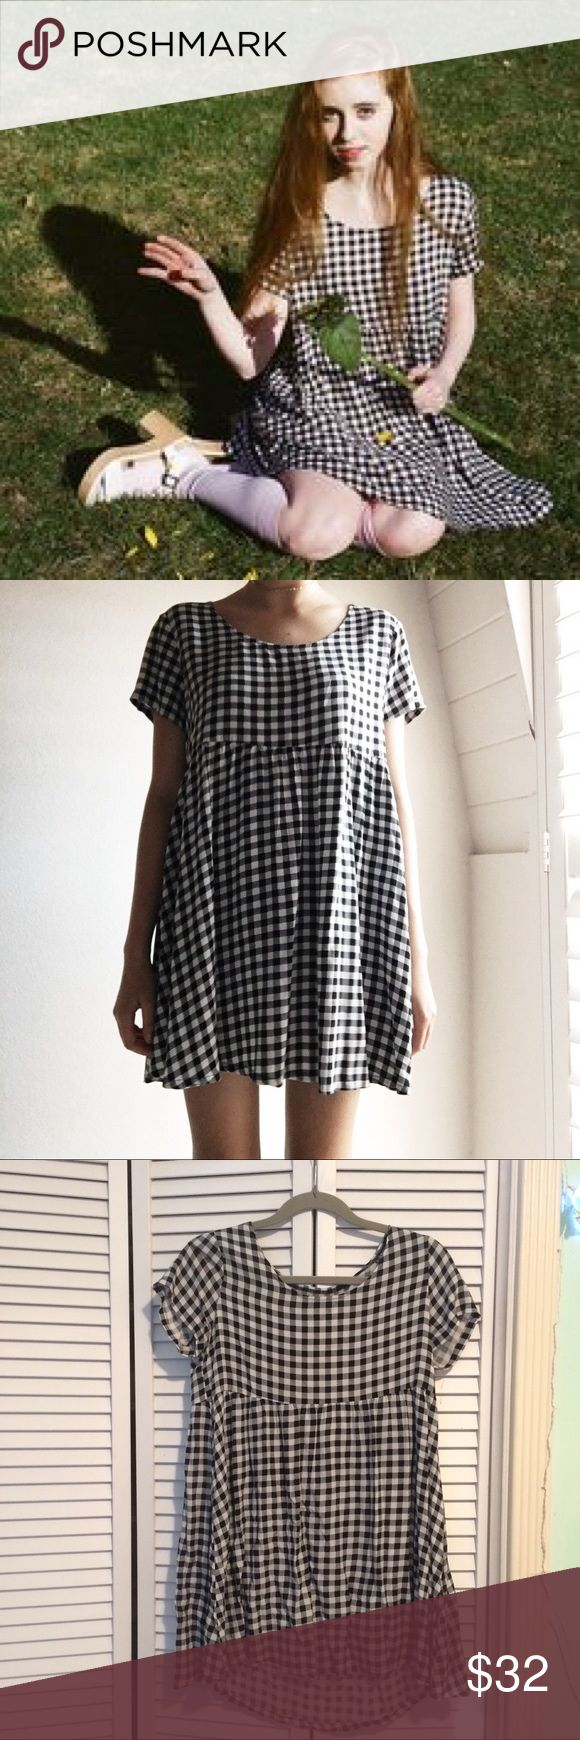 Checkered American Apparel Dress Cute babydoll American Apparel dress. Never worn! Size xs/s. Feel free to make an offer :) American Apparel Dresses Mini